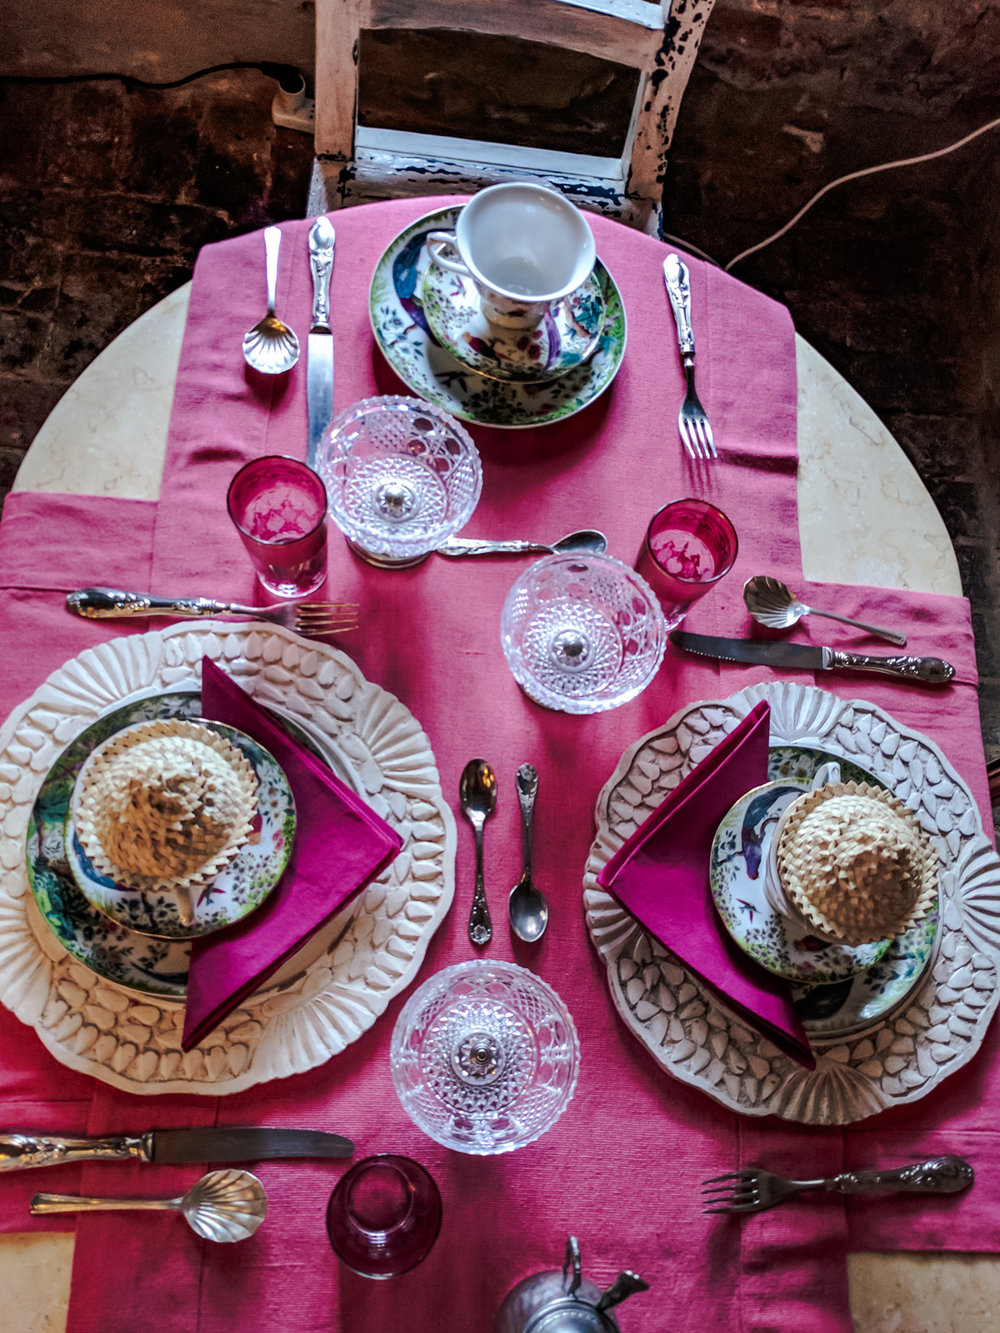 Table settings in the dining hall of Glamping Canonici Di San Marco.